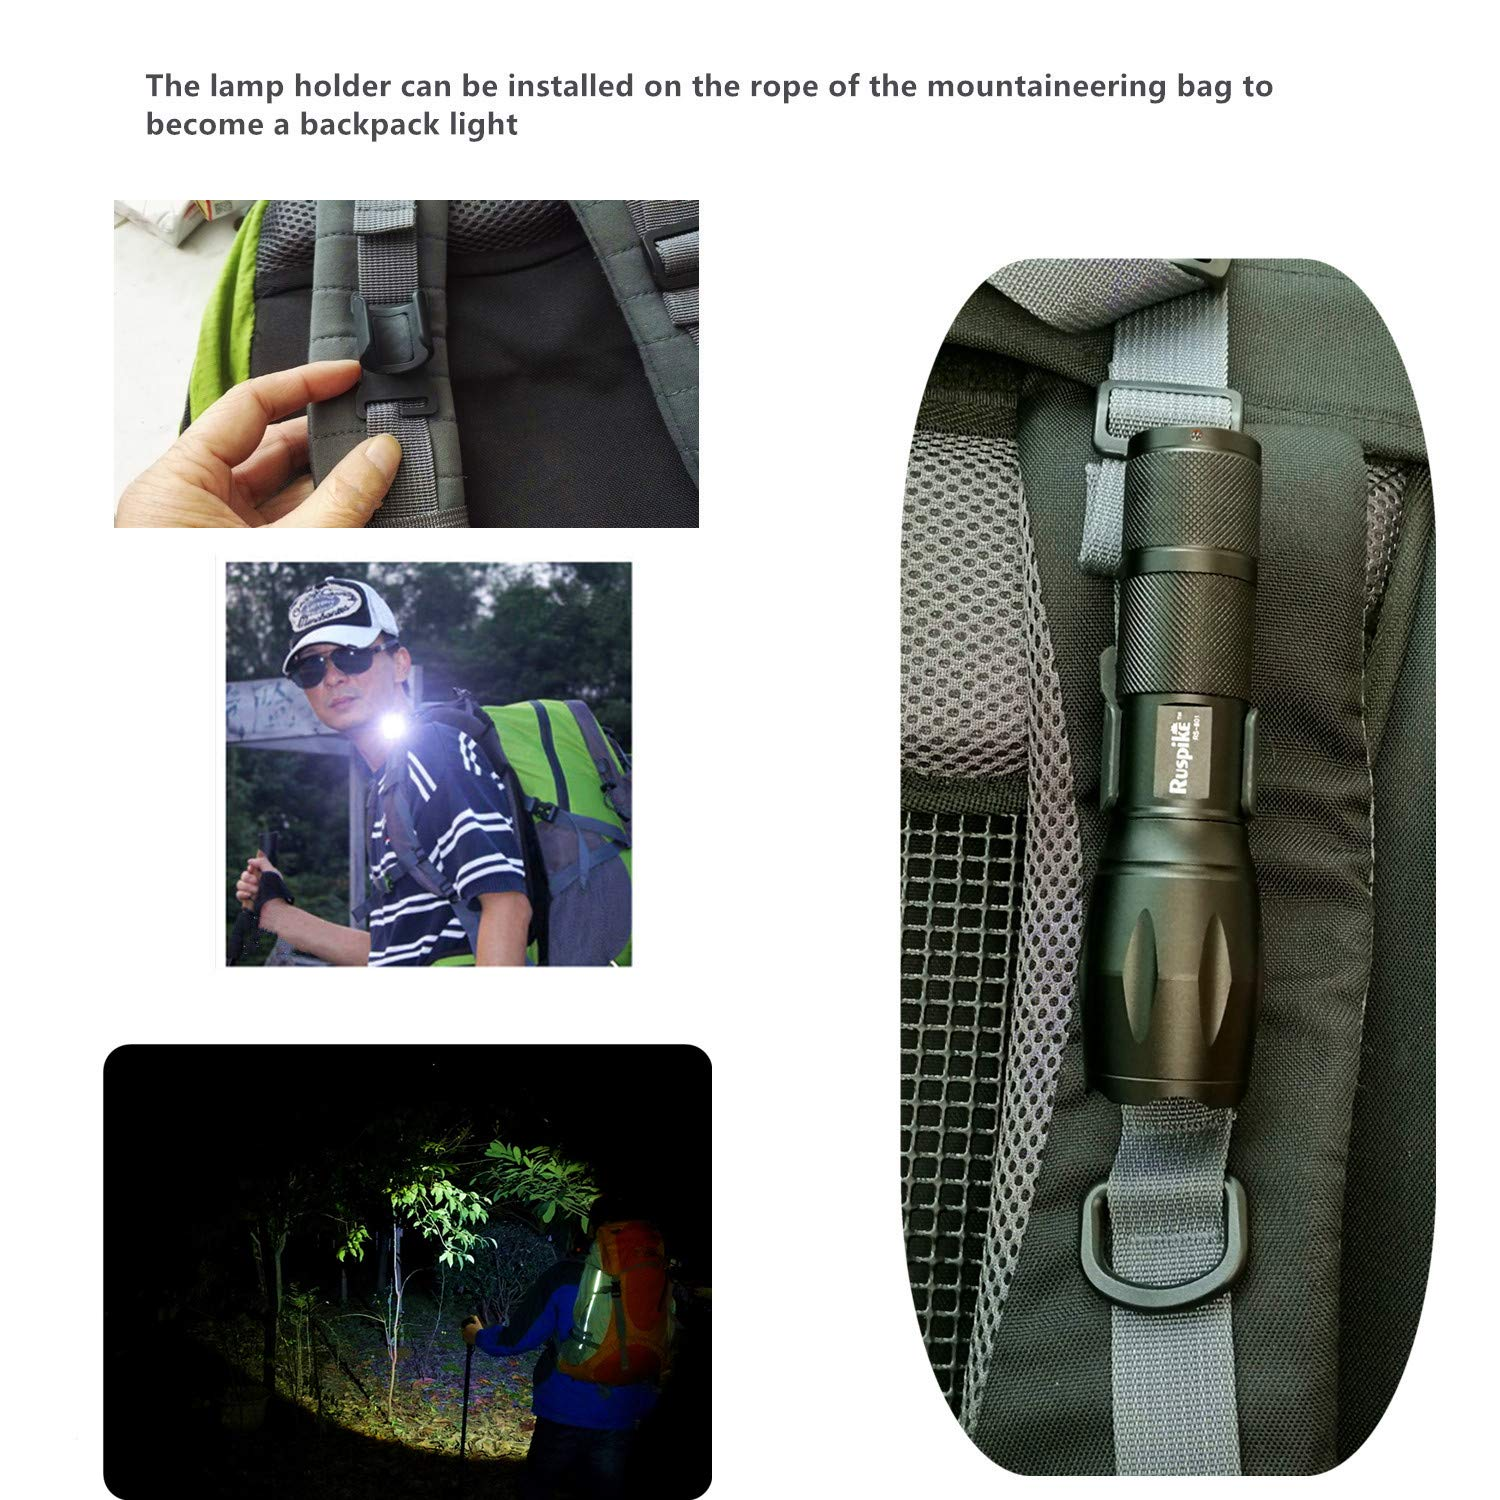 LED Tactical Flashlight Super Bright Handheld LED Flashlight with Adjustable Focus and Water Resistant Emergency Perfect for Camping,Hiking,Outdoor